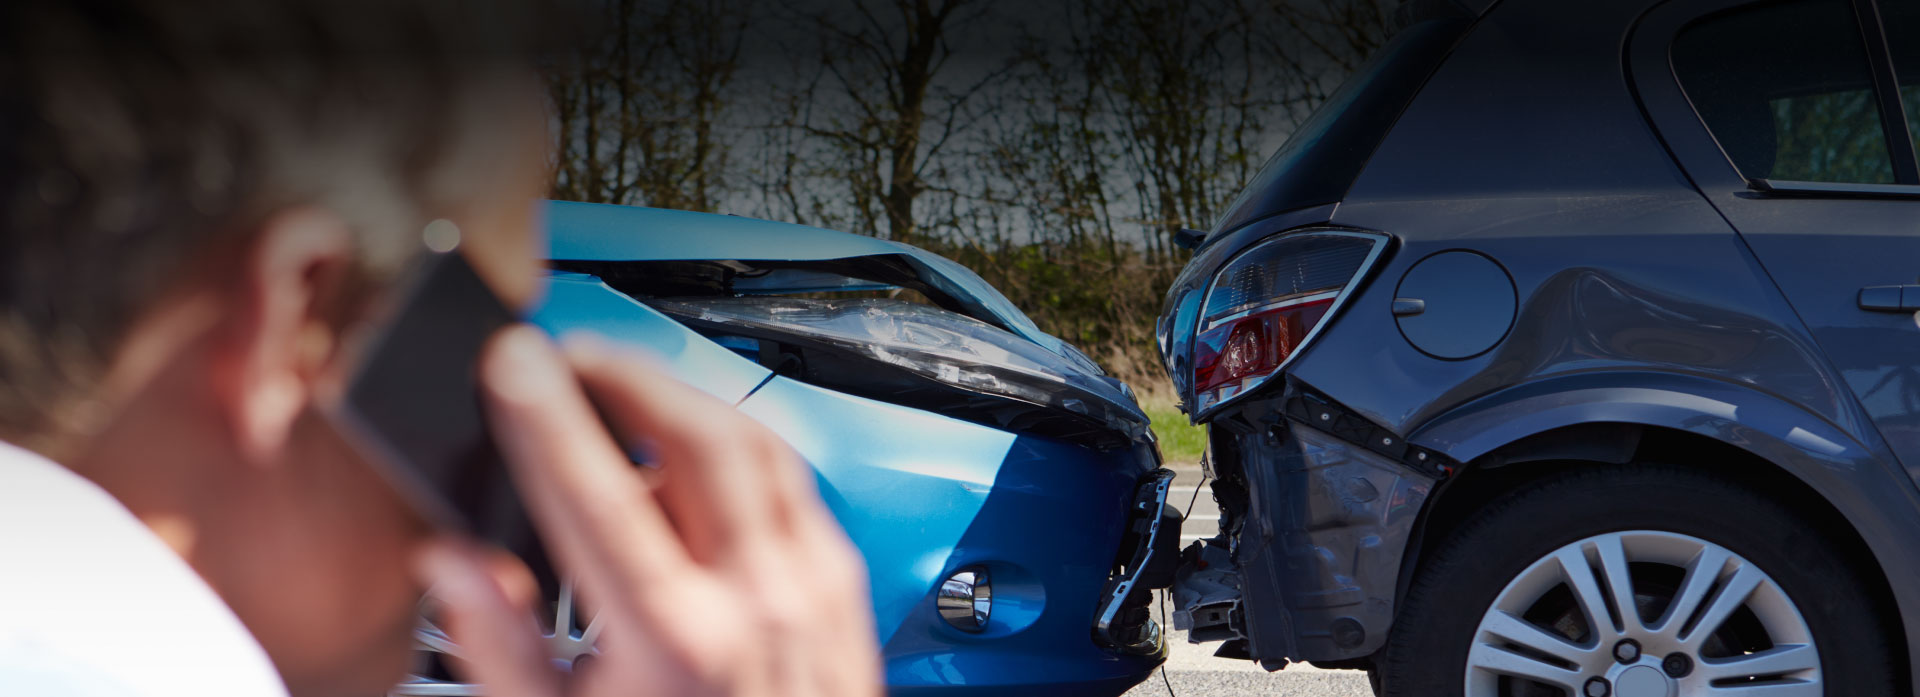 What are Some Causes of Car Accidents in New Jersey?